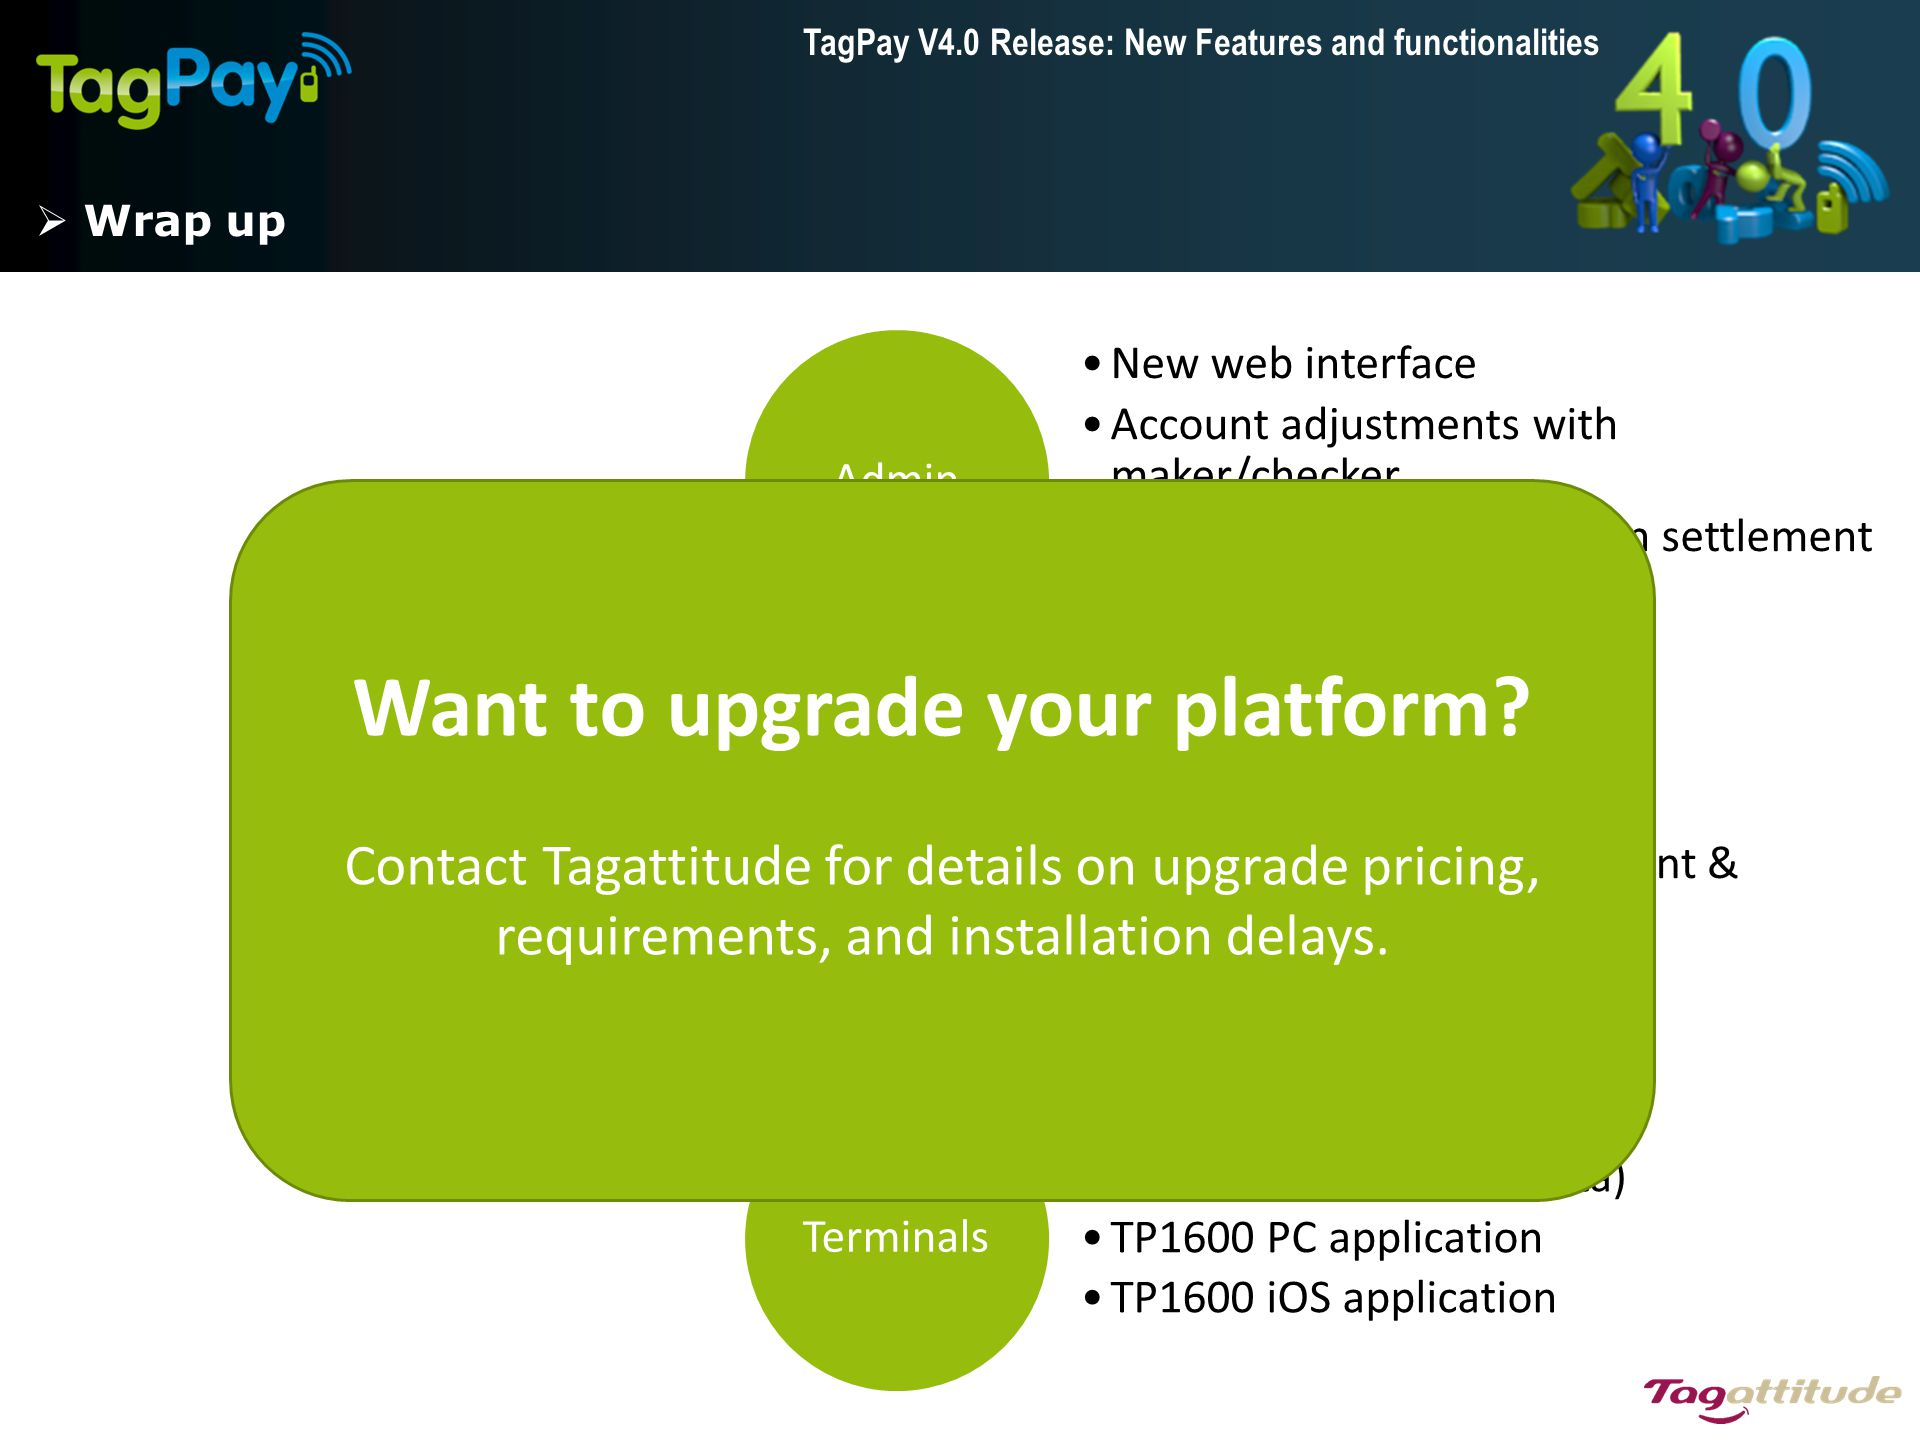 TagPay V4.0 Release: New Features and functionalities  Wrap up Admin New web interface Account adjustments with maker/checker Batch invoice generatio